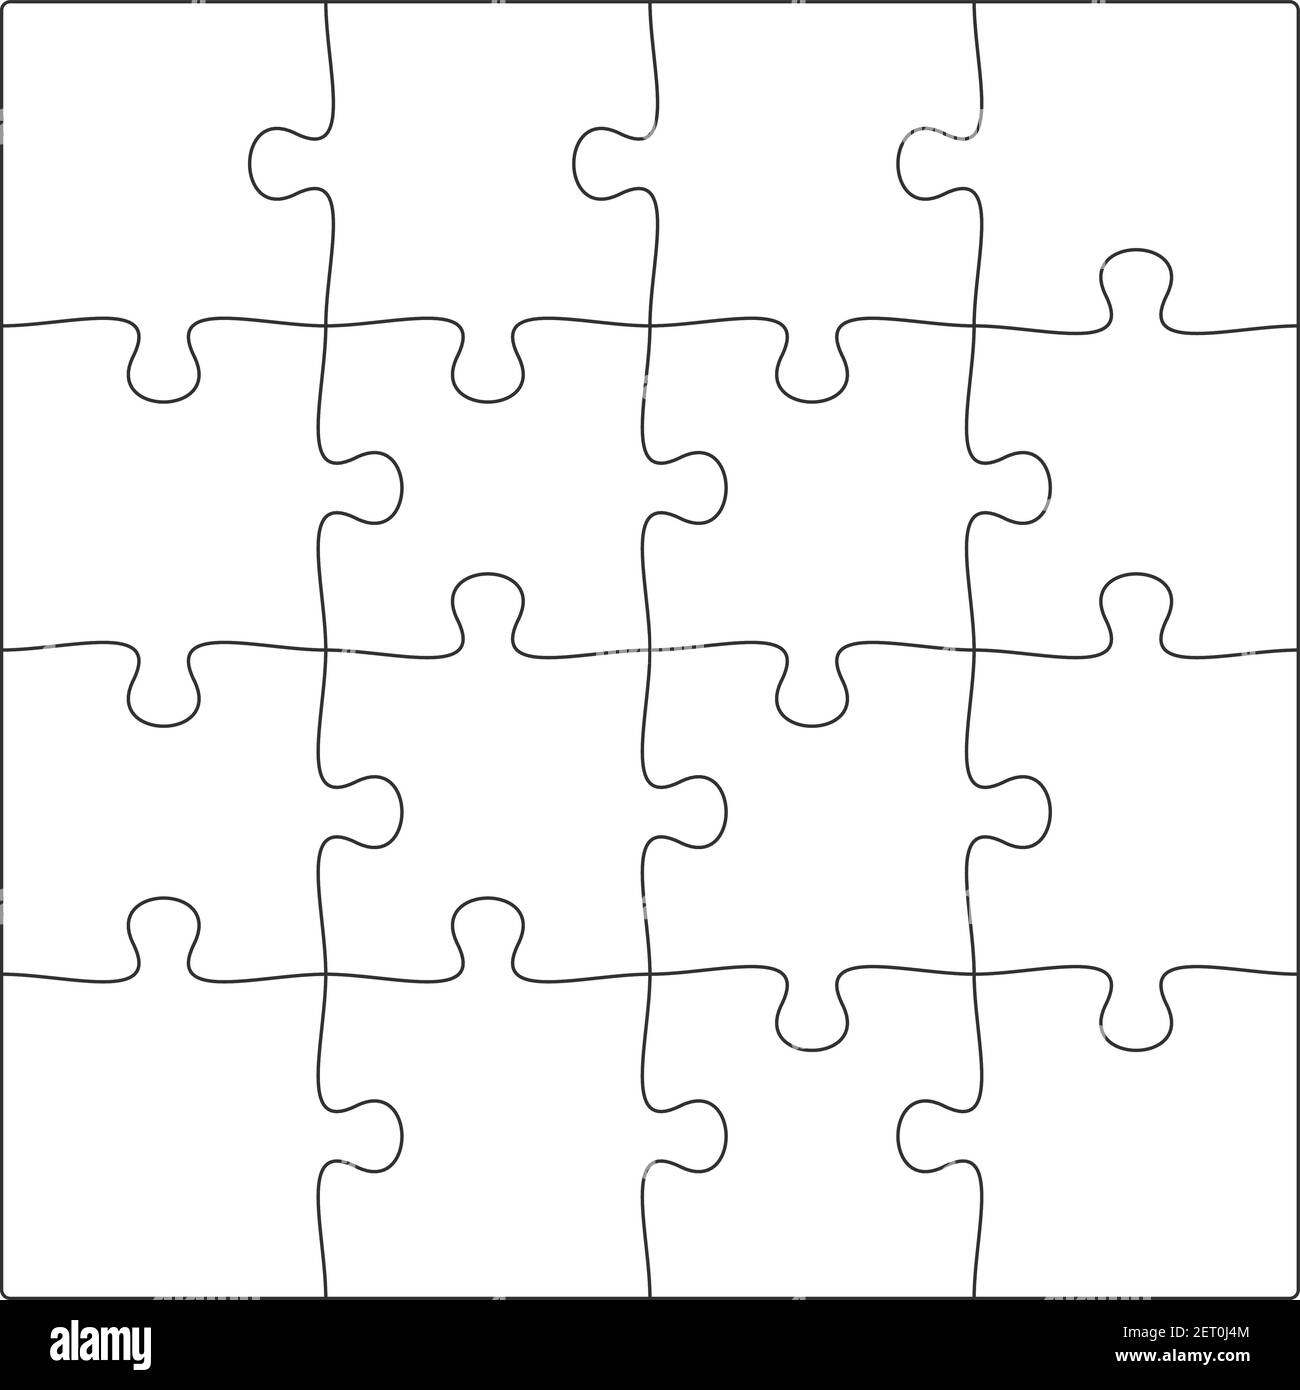 Blank Jigsaw Puzzle Pieces Black and White Stock Photos & Images In Blank Jigsaw Piece Template